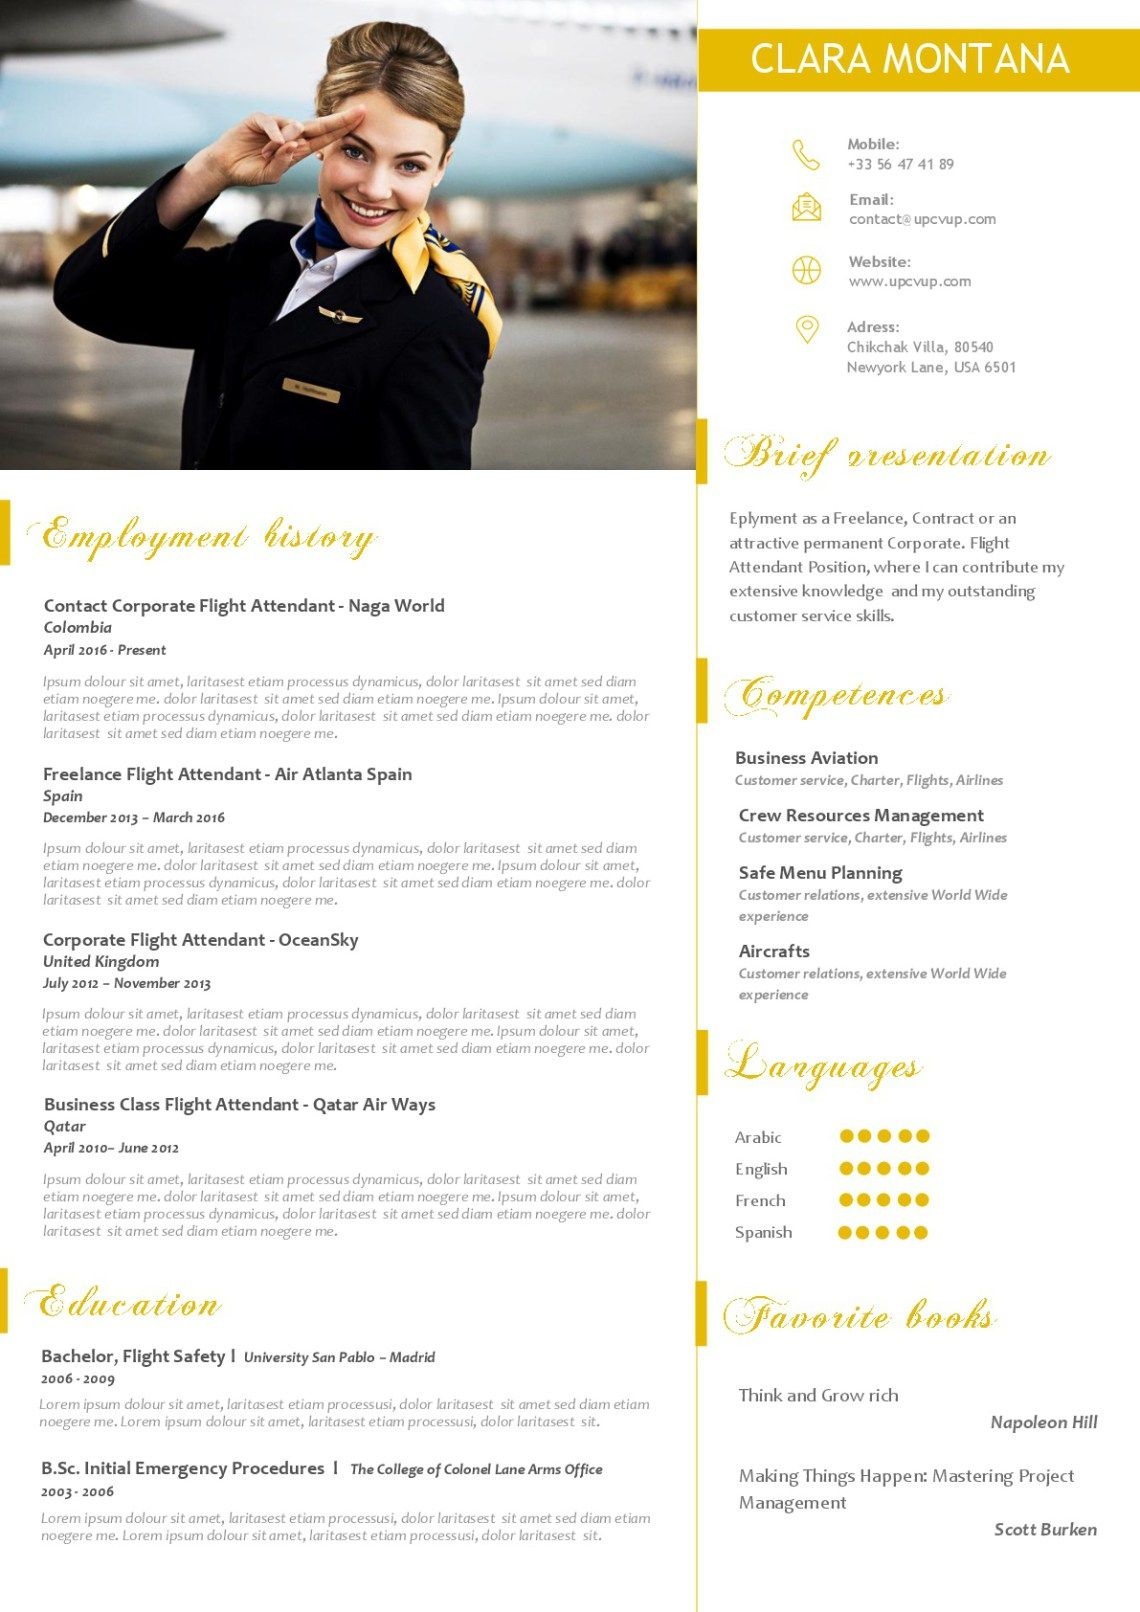 Cover letter example for emirates cabin crew templates flight cover letter example for emirates cabin crew templates flight attendant resume experience sample resumes spiritdancerdesigns Gallery